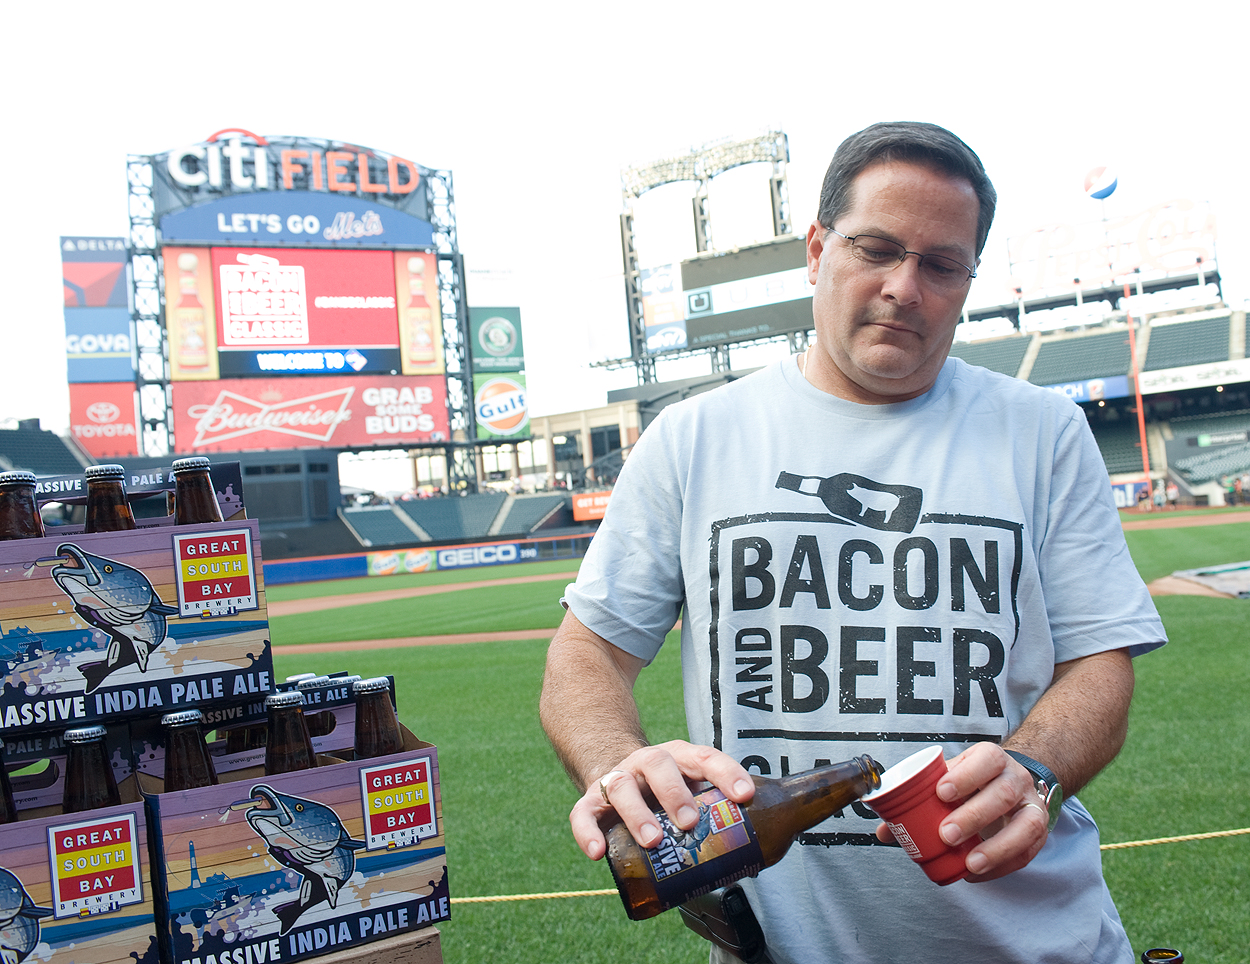 bacon_and_beer_classic_nyc_citi_field_2014_burger_conquest_winners_photos_information_31